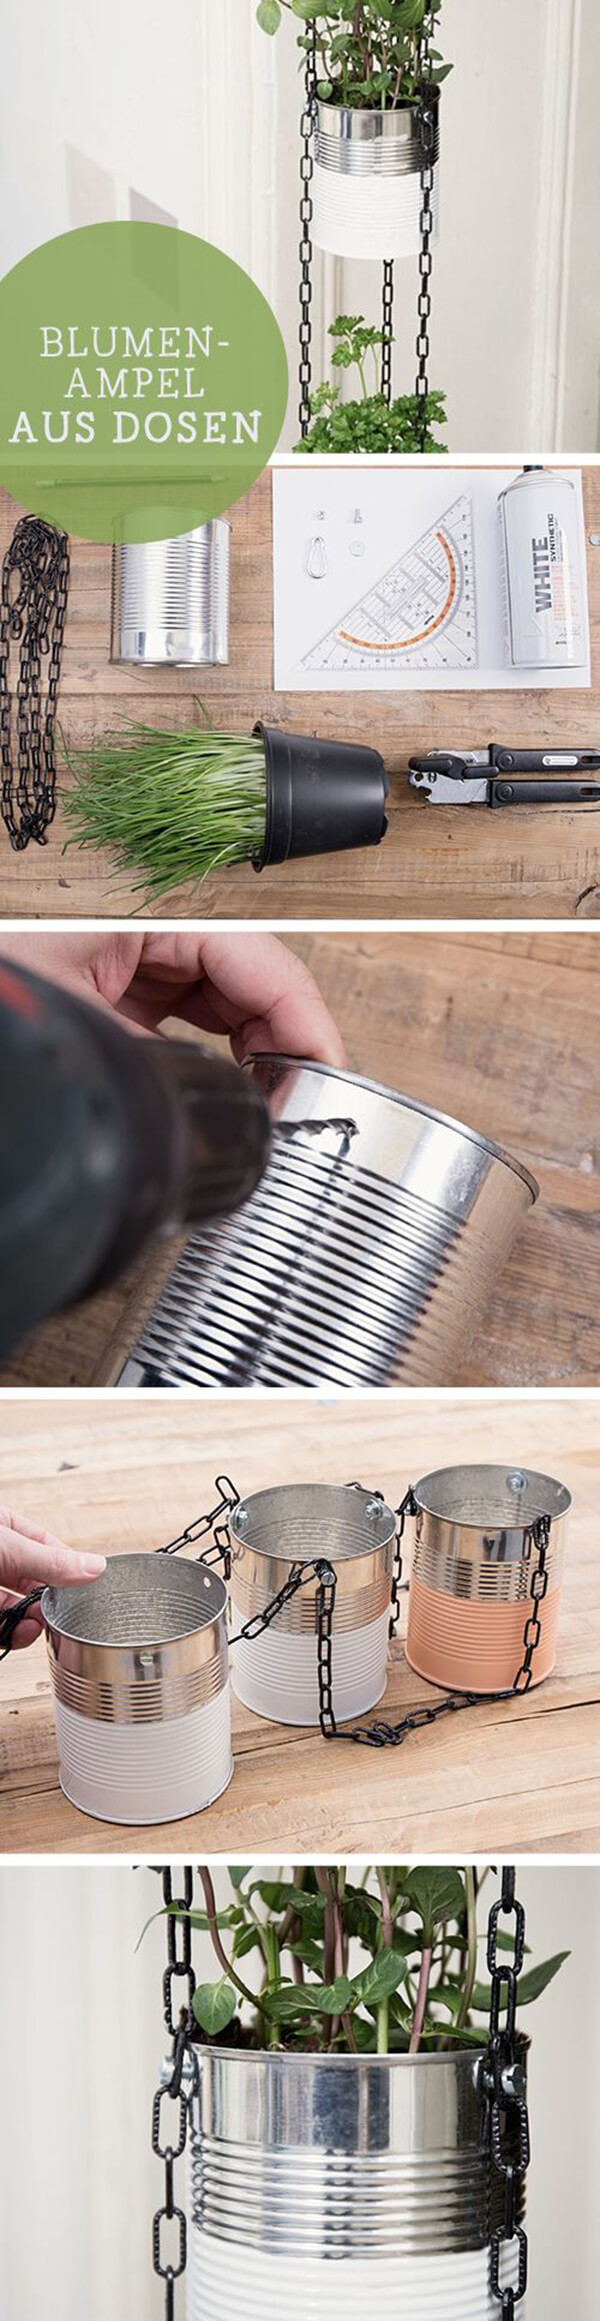 Vertical Hanging Herb Gardening with Painted Tin Cans with Chain Hangers